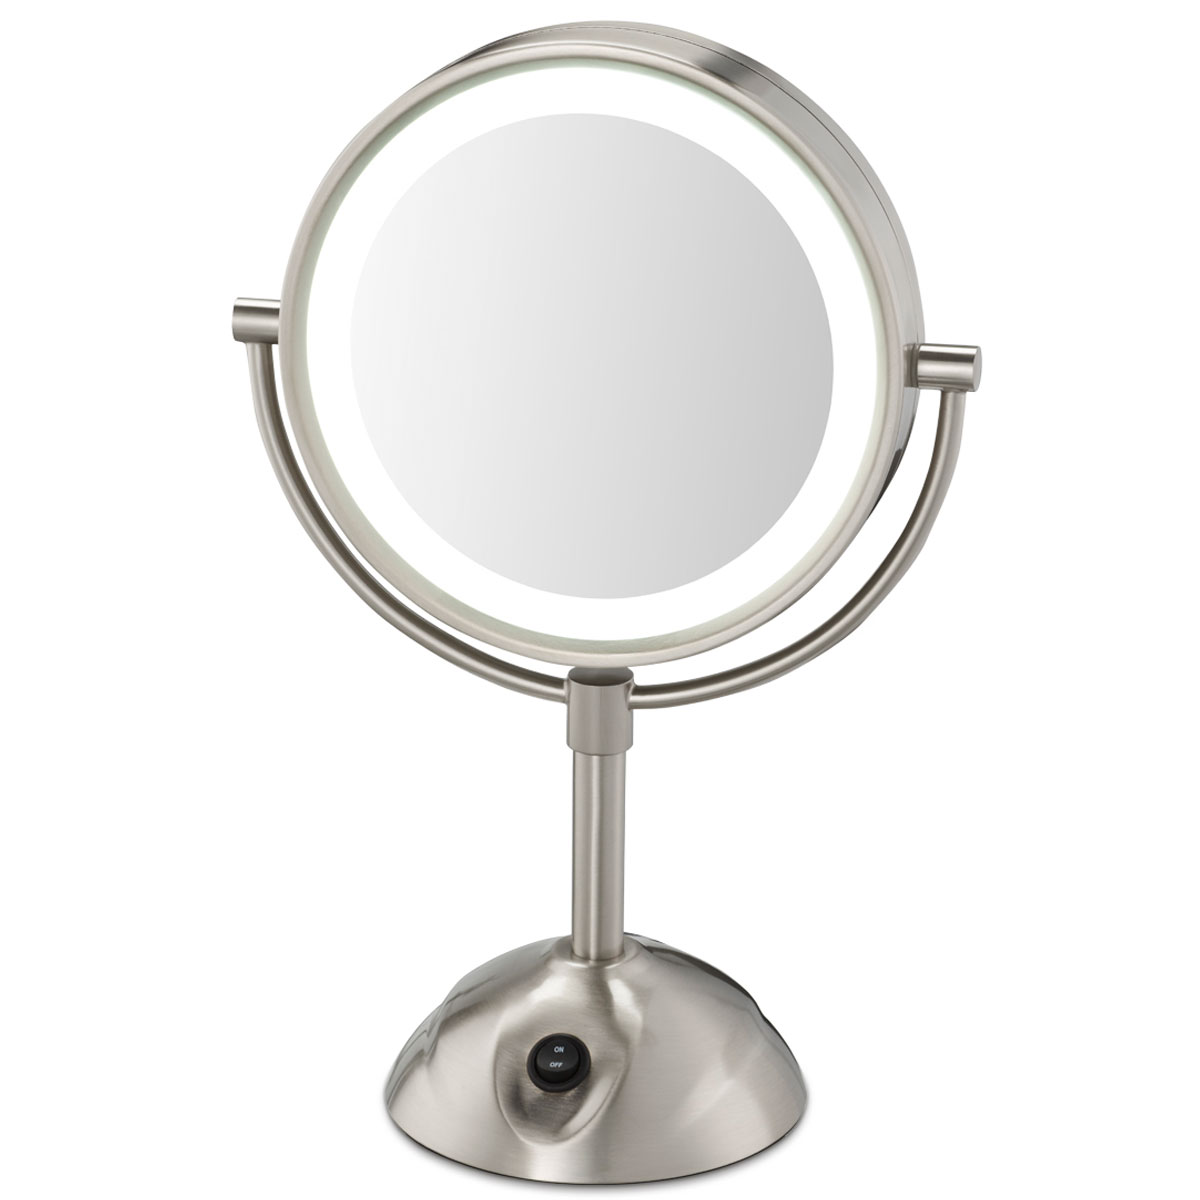 Lighted Vanity Mirror Conair : Conair BE119WH 8.5